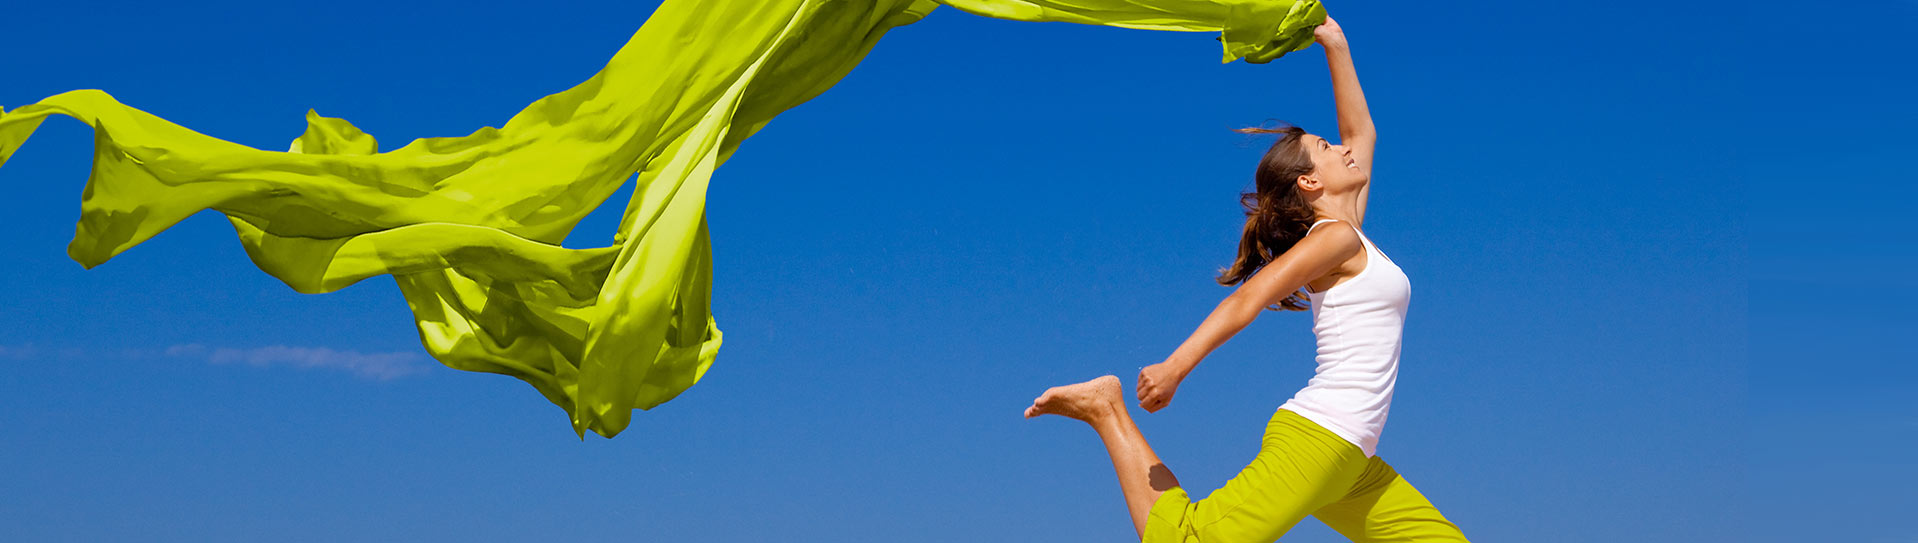 lady jumping in air happy with long scarf